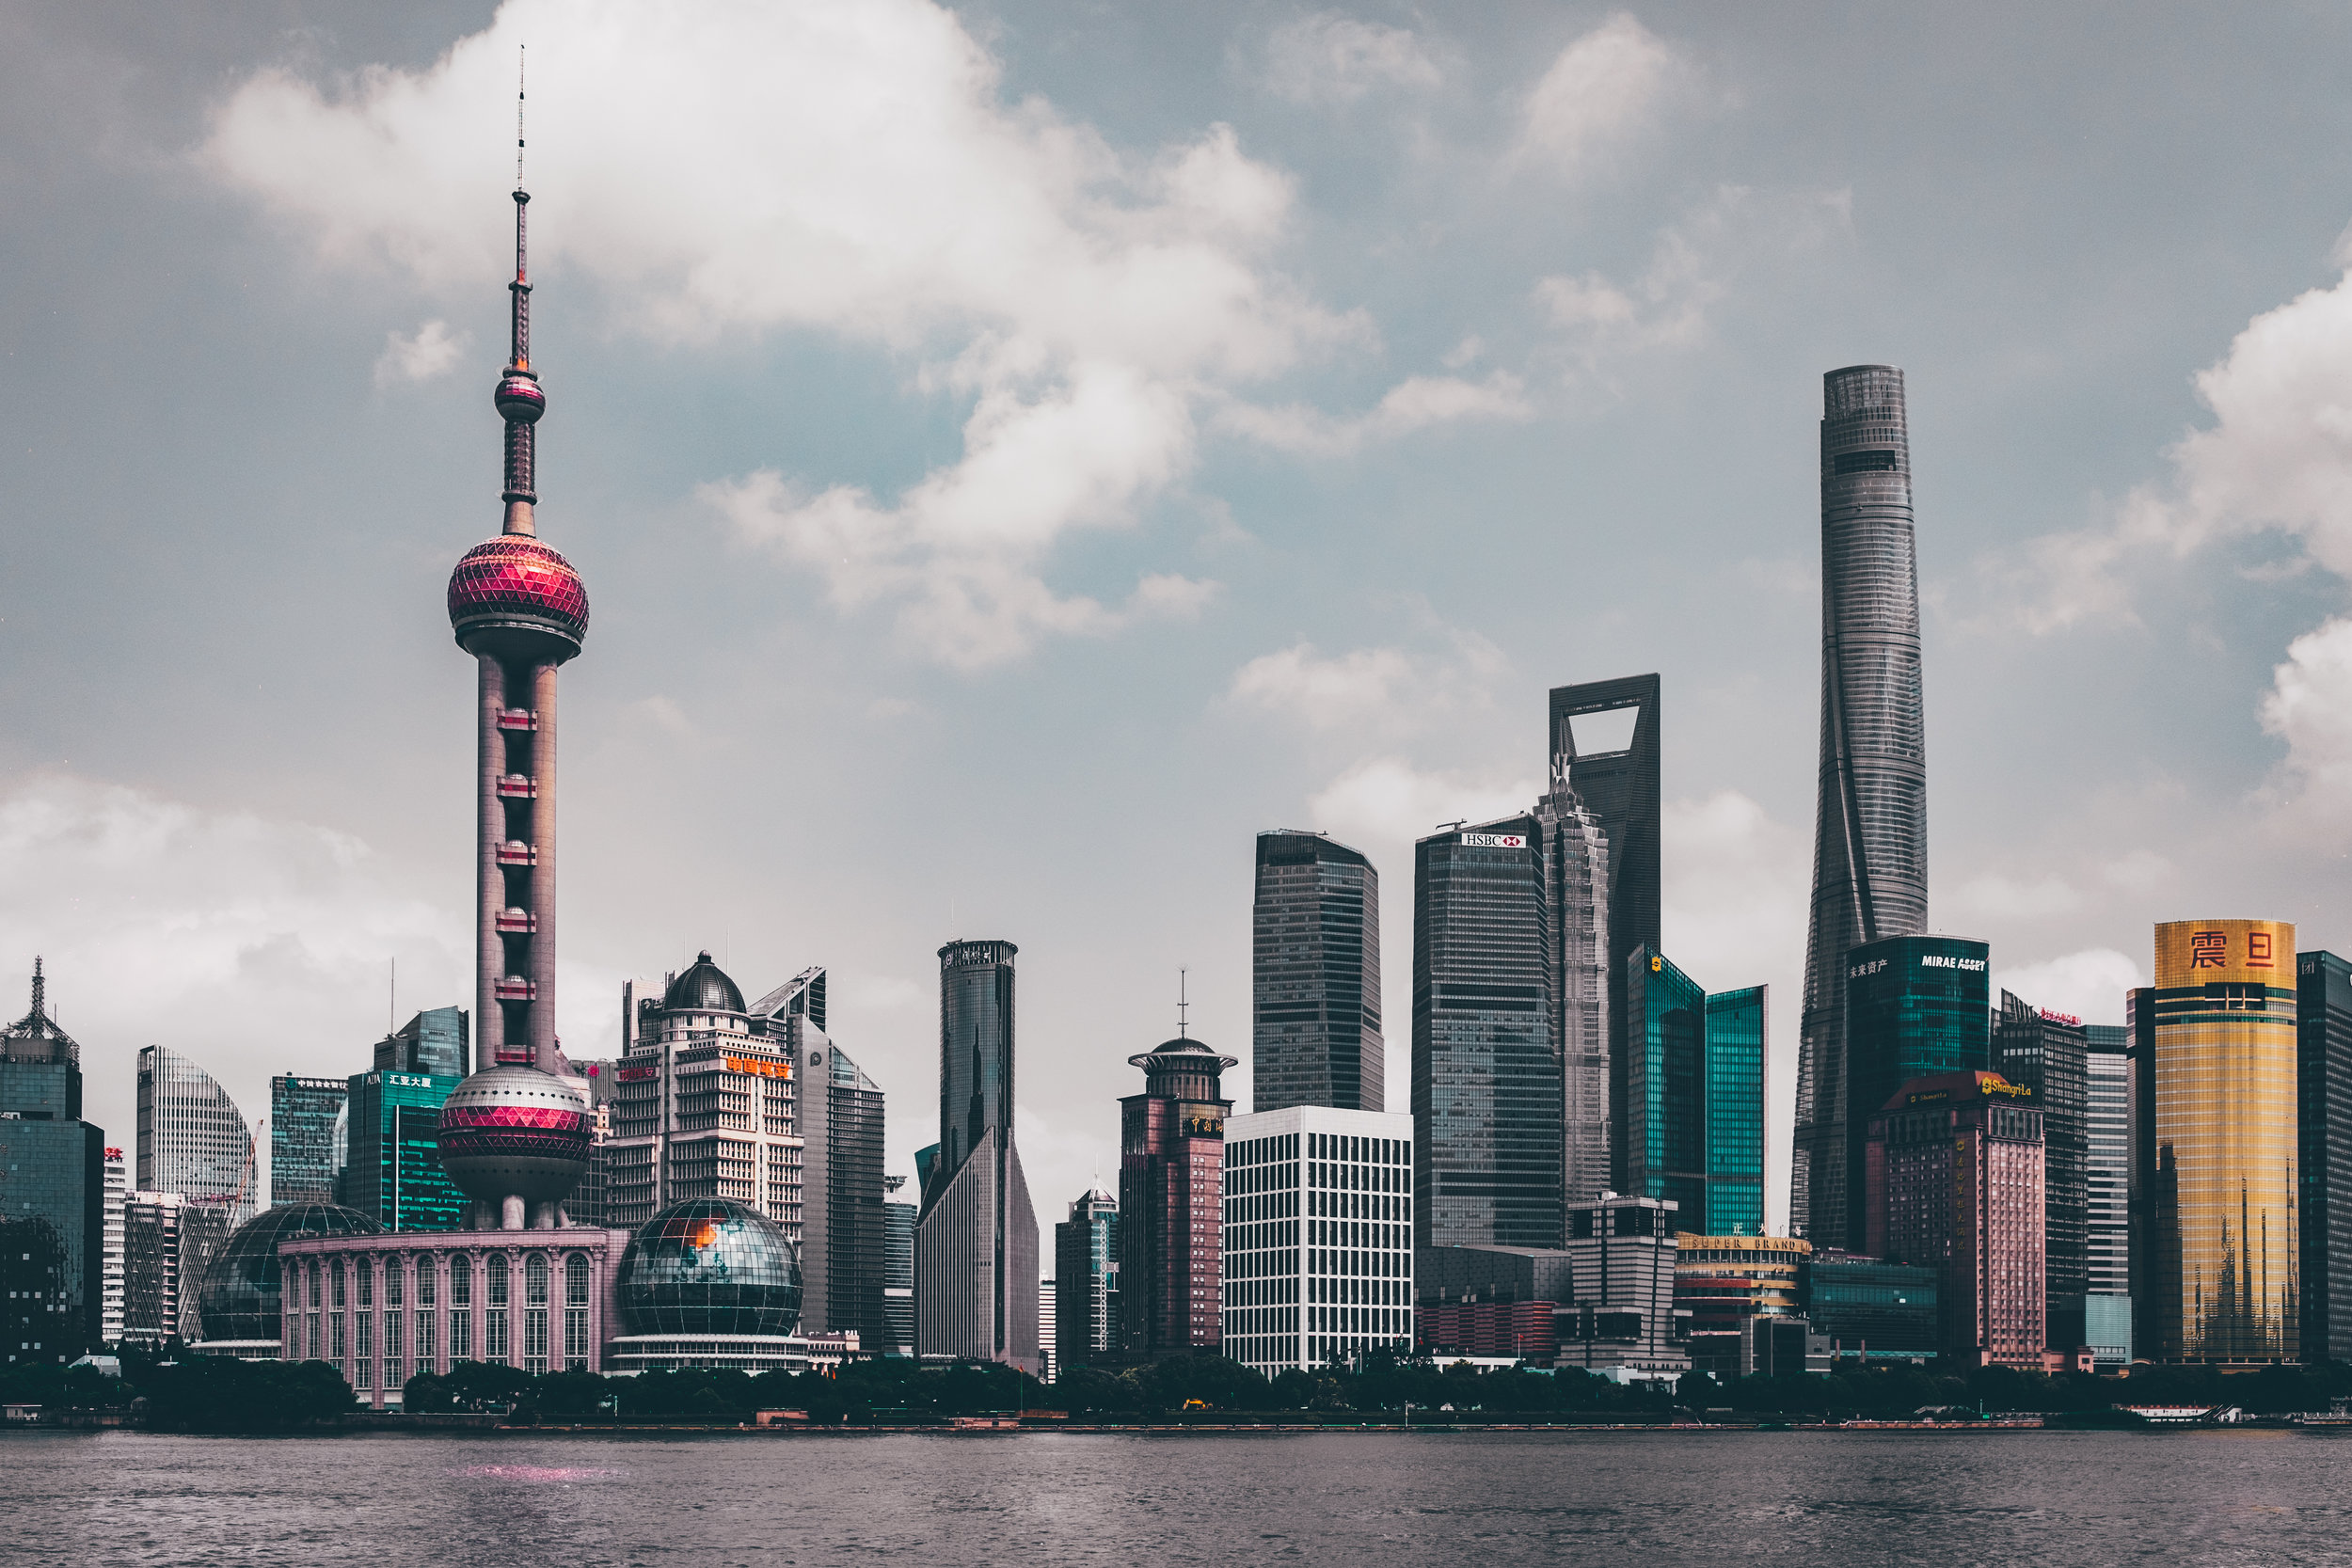 Executive creative director - We partnered with our global client to place a leading creative executive in Shanghai.